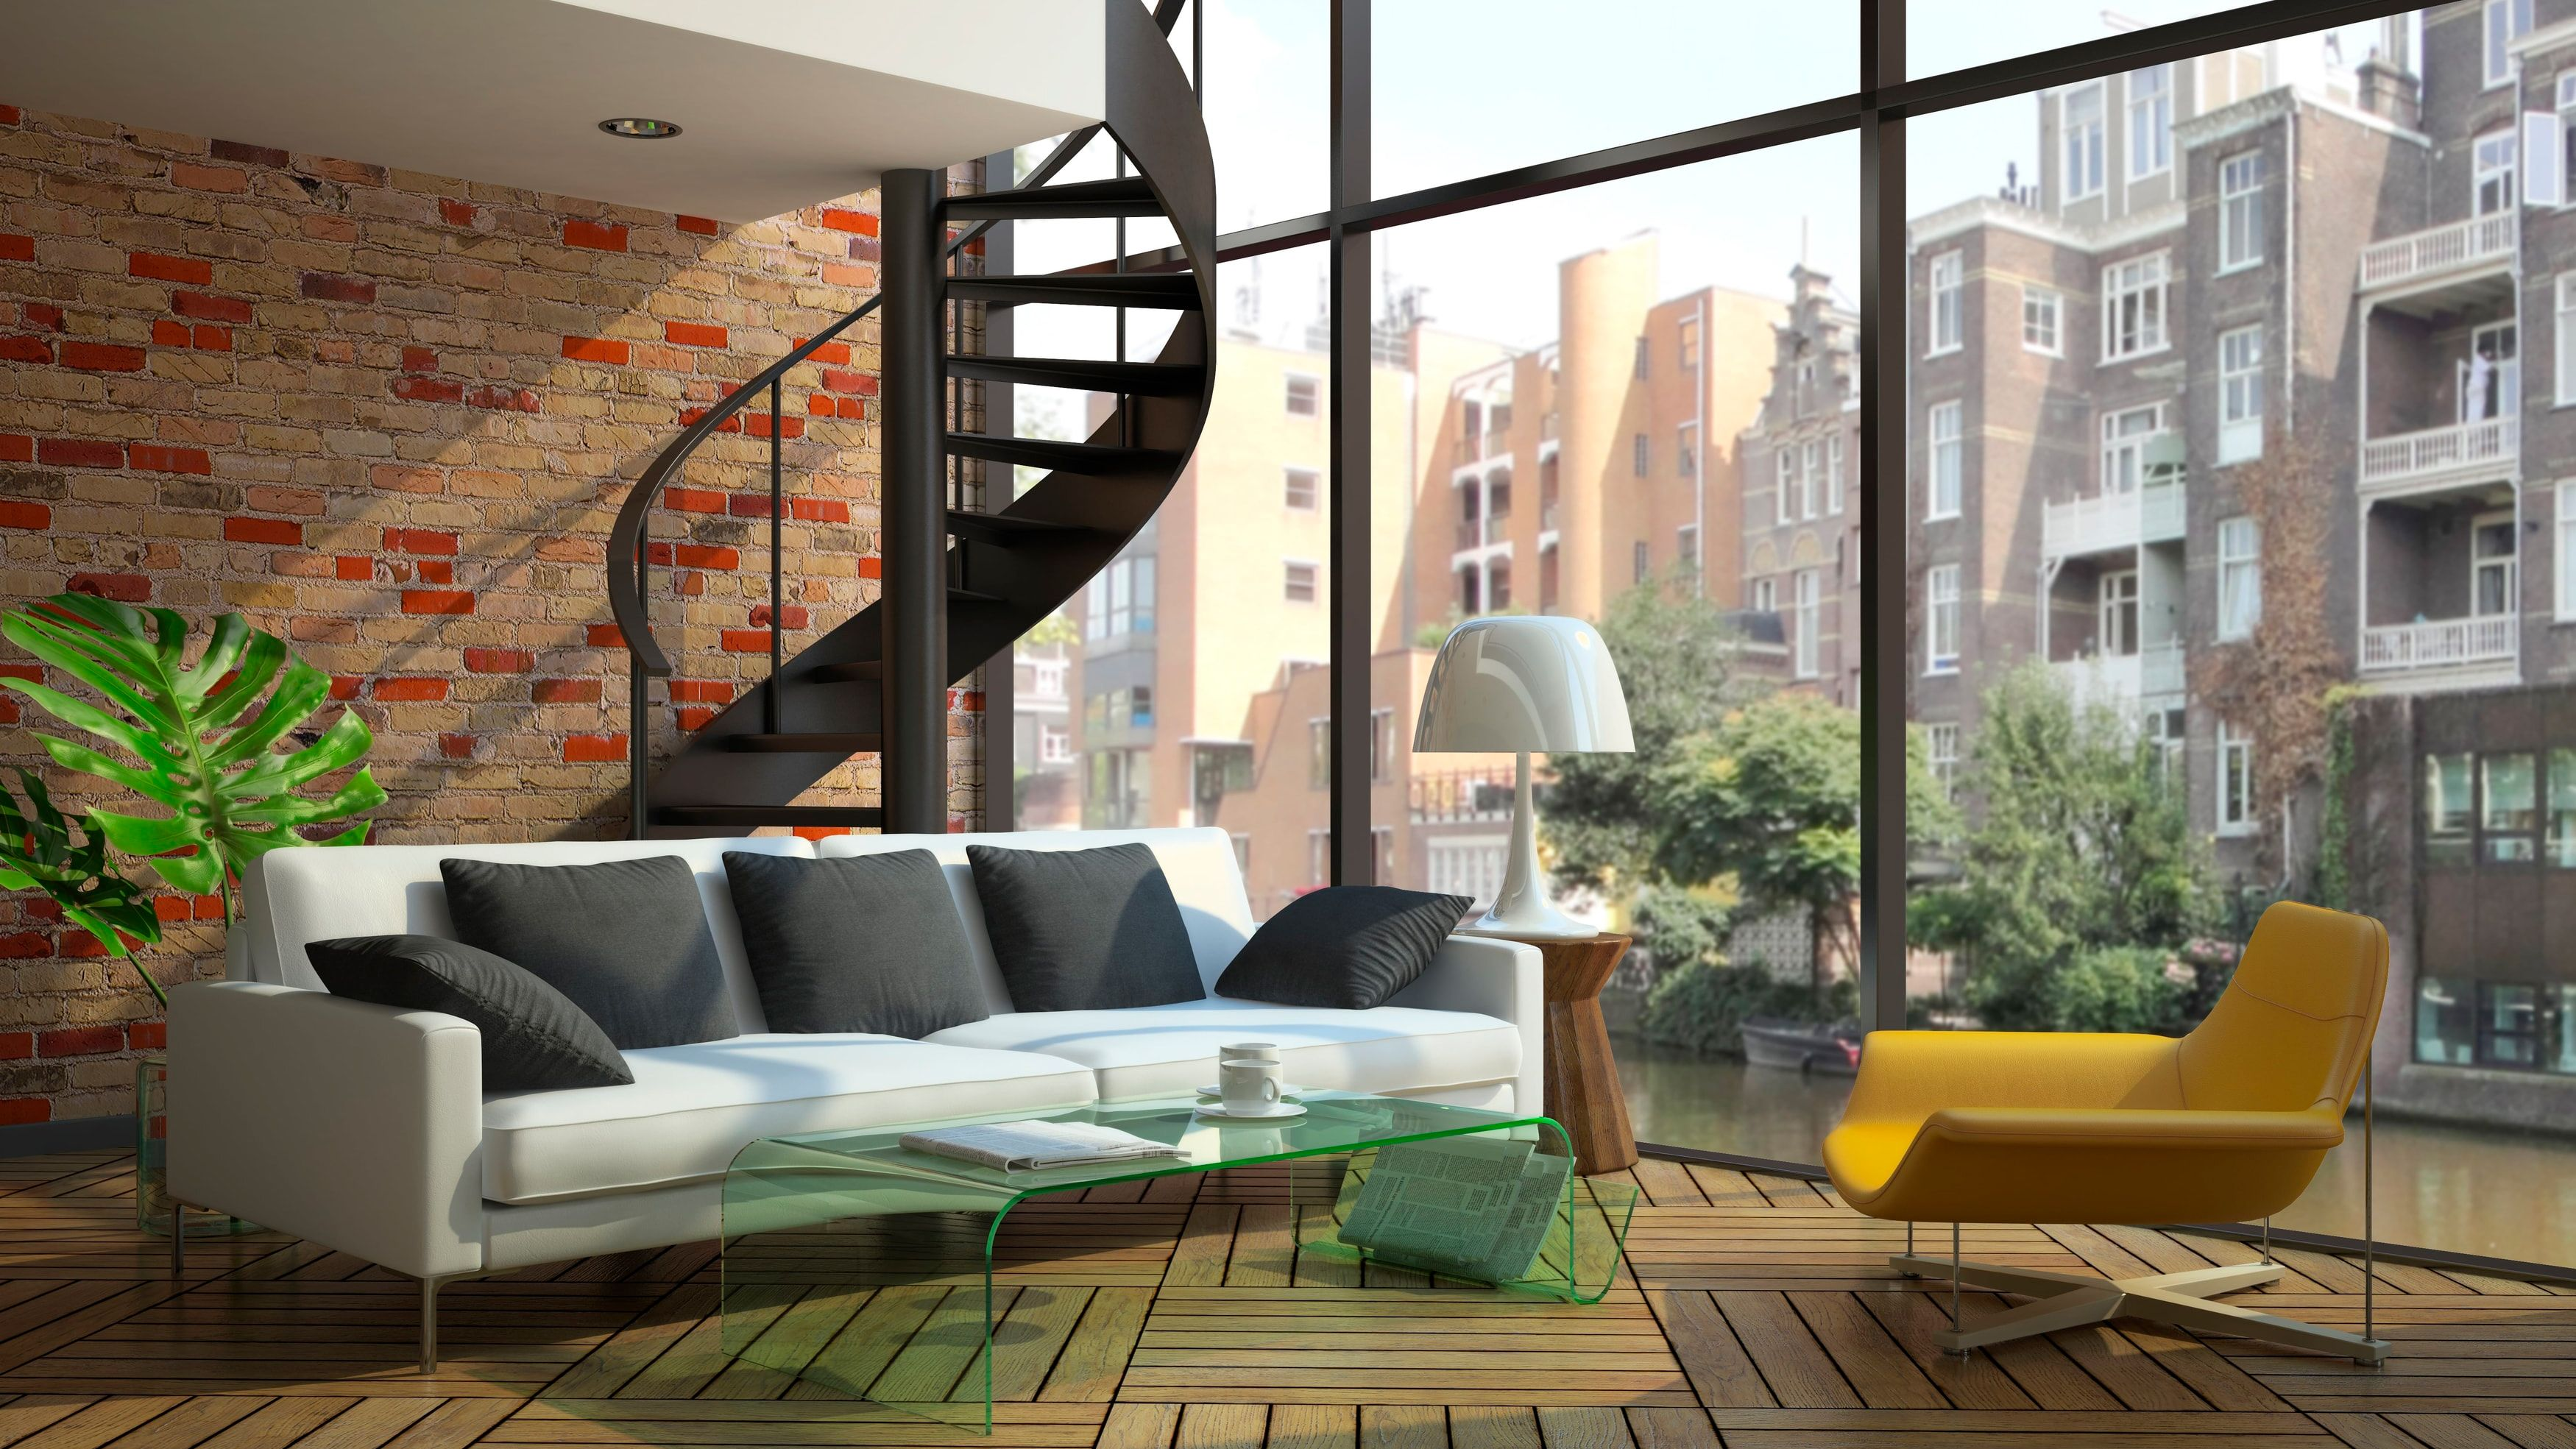 Eclectic Yet Minimal: Loft Spaces Are Known For The Ample Airy White Space  Available. Thus, Loft Style Furniture Must Be Picked Out Such That It Does  Not ...